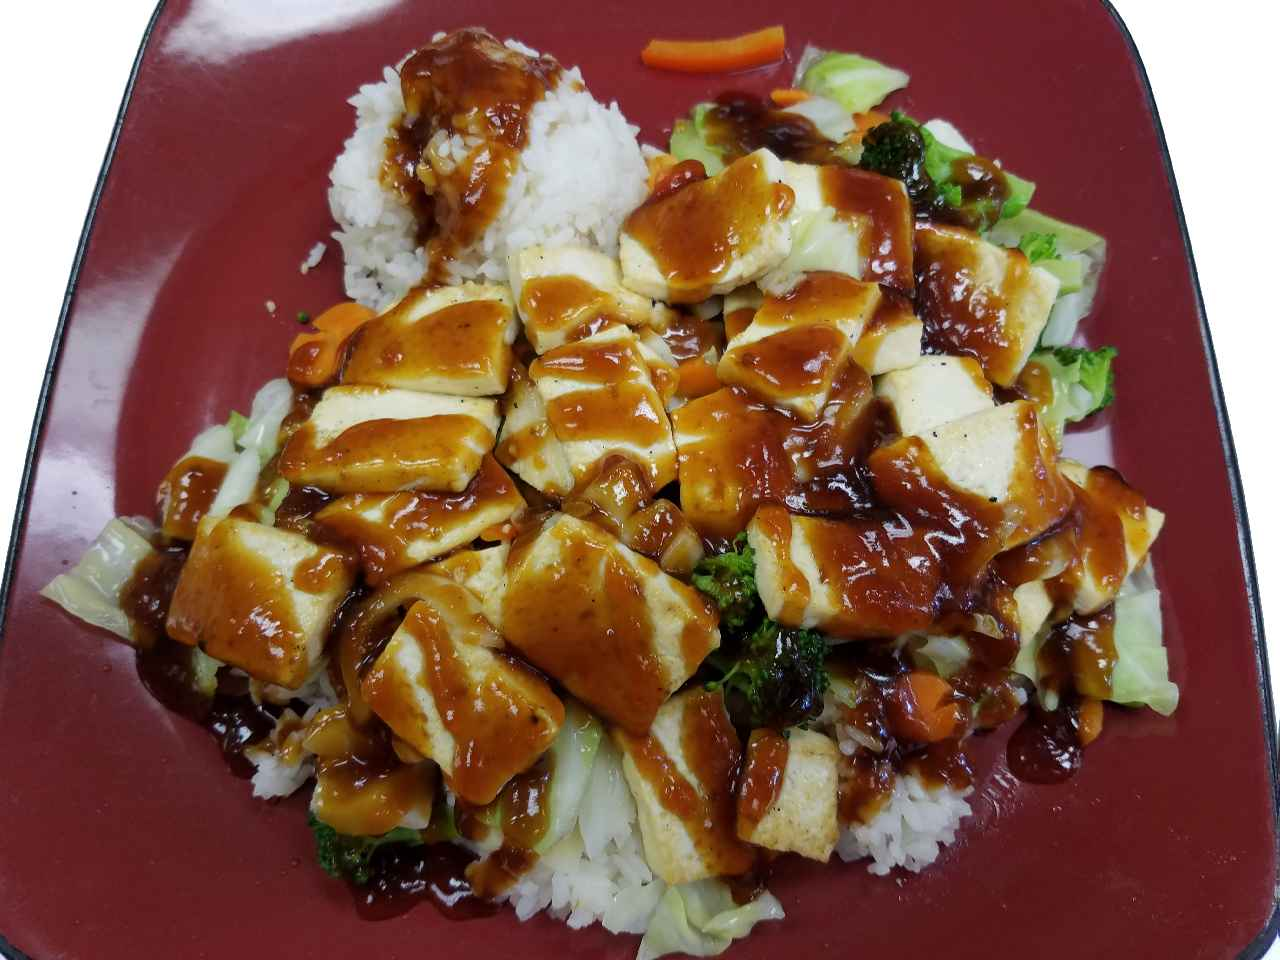 32. Tofu Teriyaki with Steamed Rice